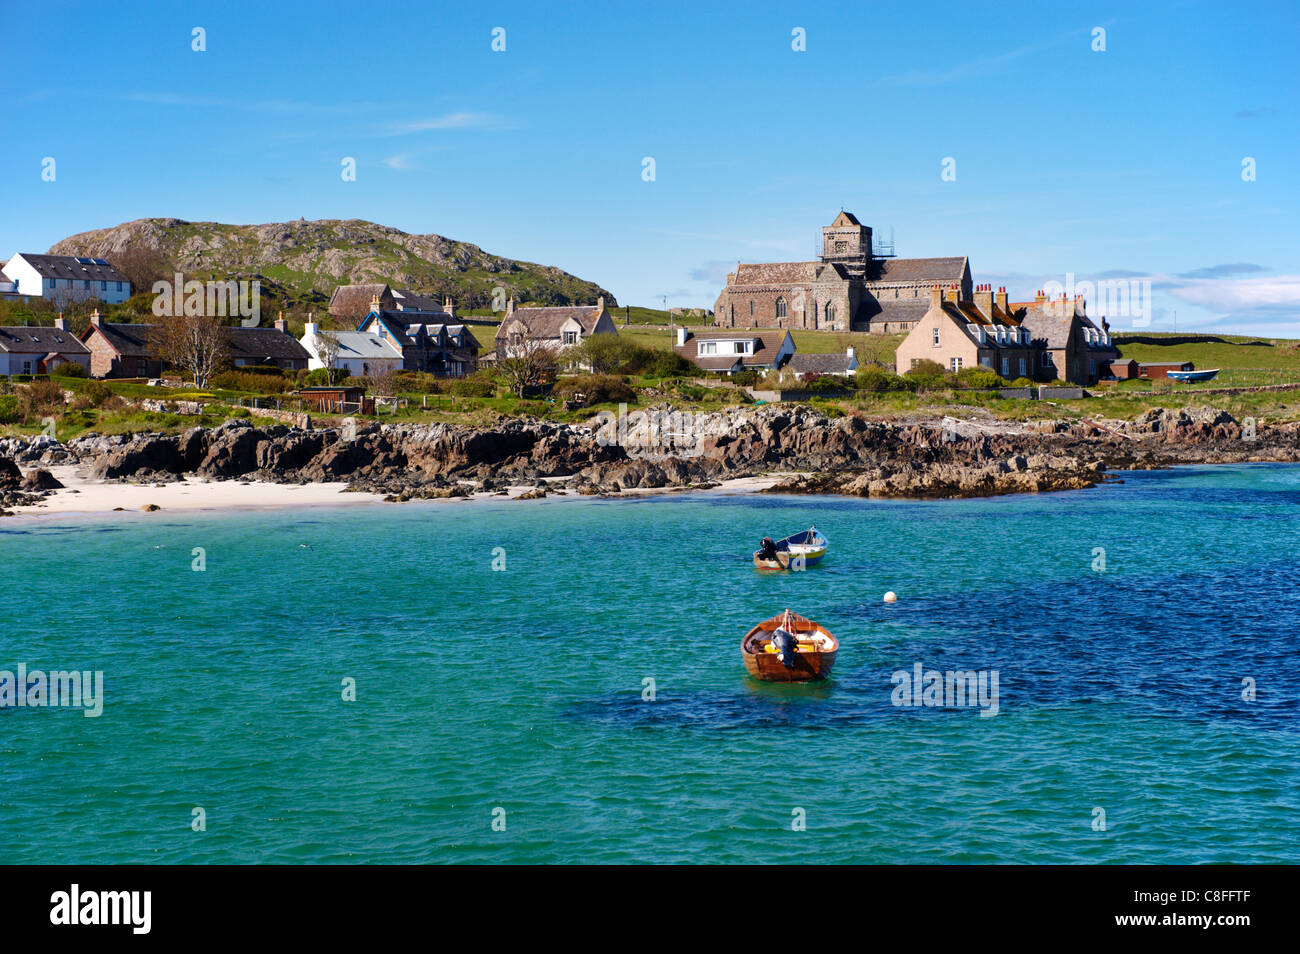 Iona Abbey, Isle of Iona, Inner Hebrides, Scotland, United Kingdom Stock Photo